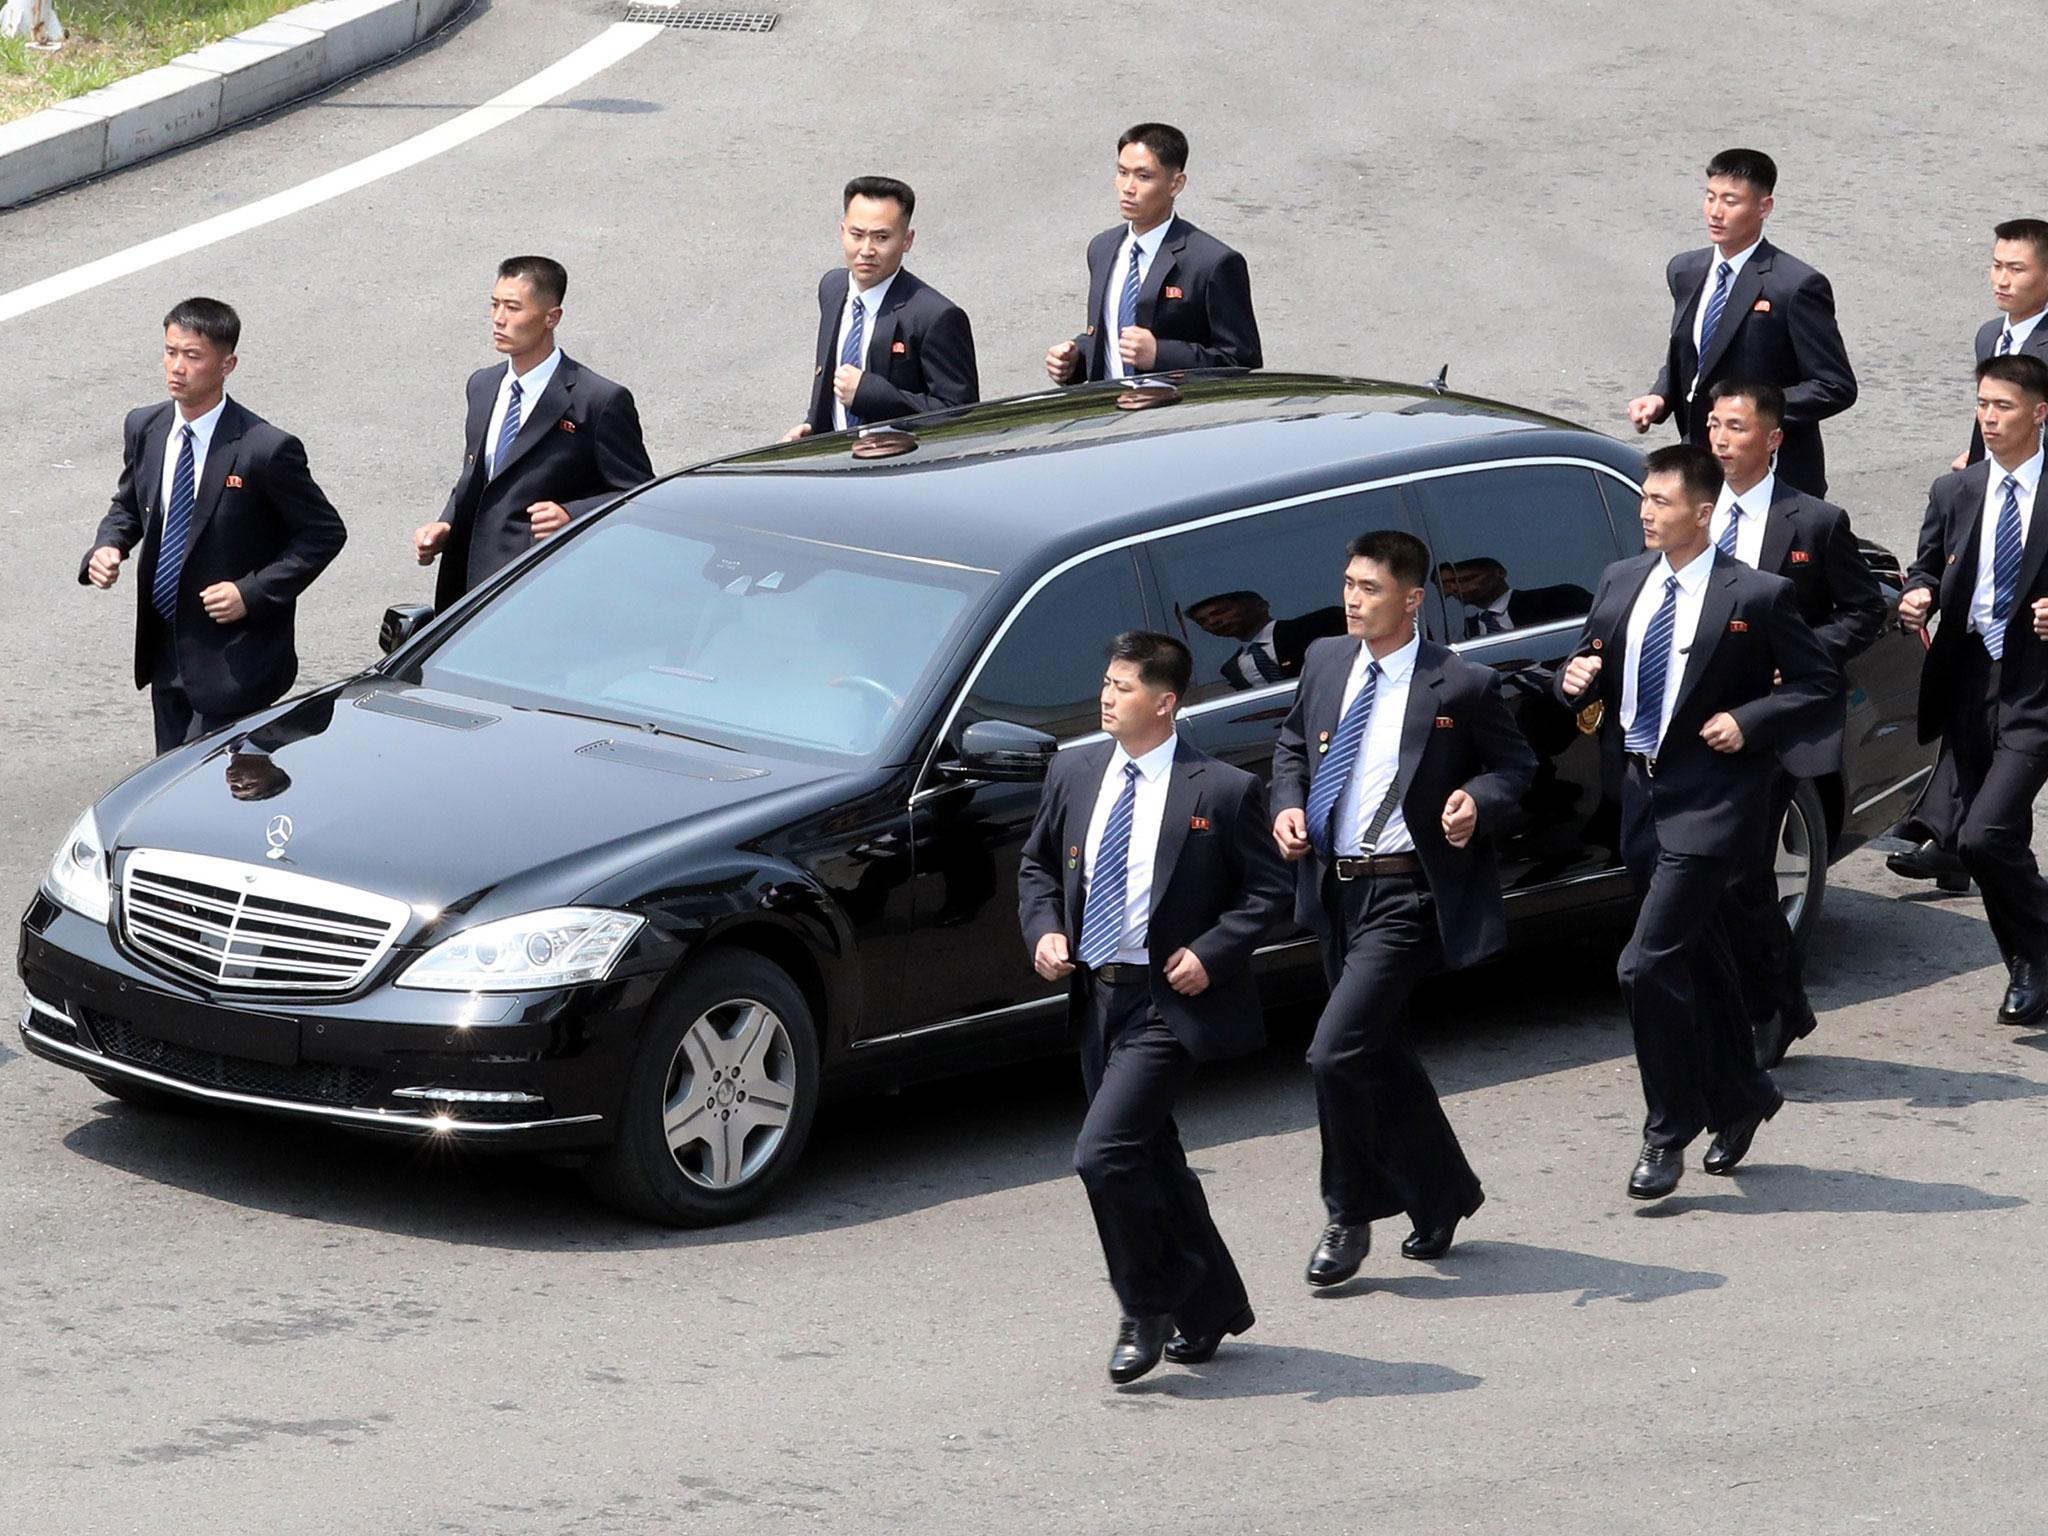 kim jong un 39 s official car flanked by 12 bodyguards running in formation the independent. Black Bedroom Furniture Sets. Home Design Ideas